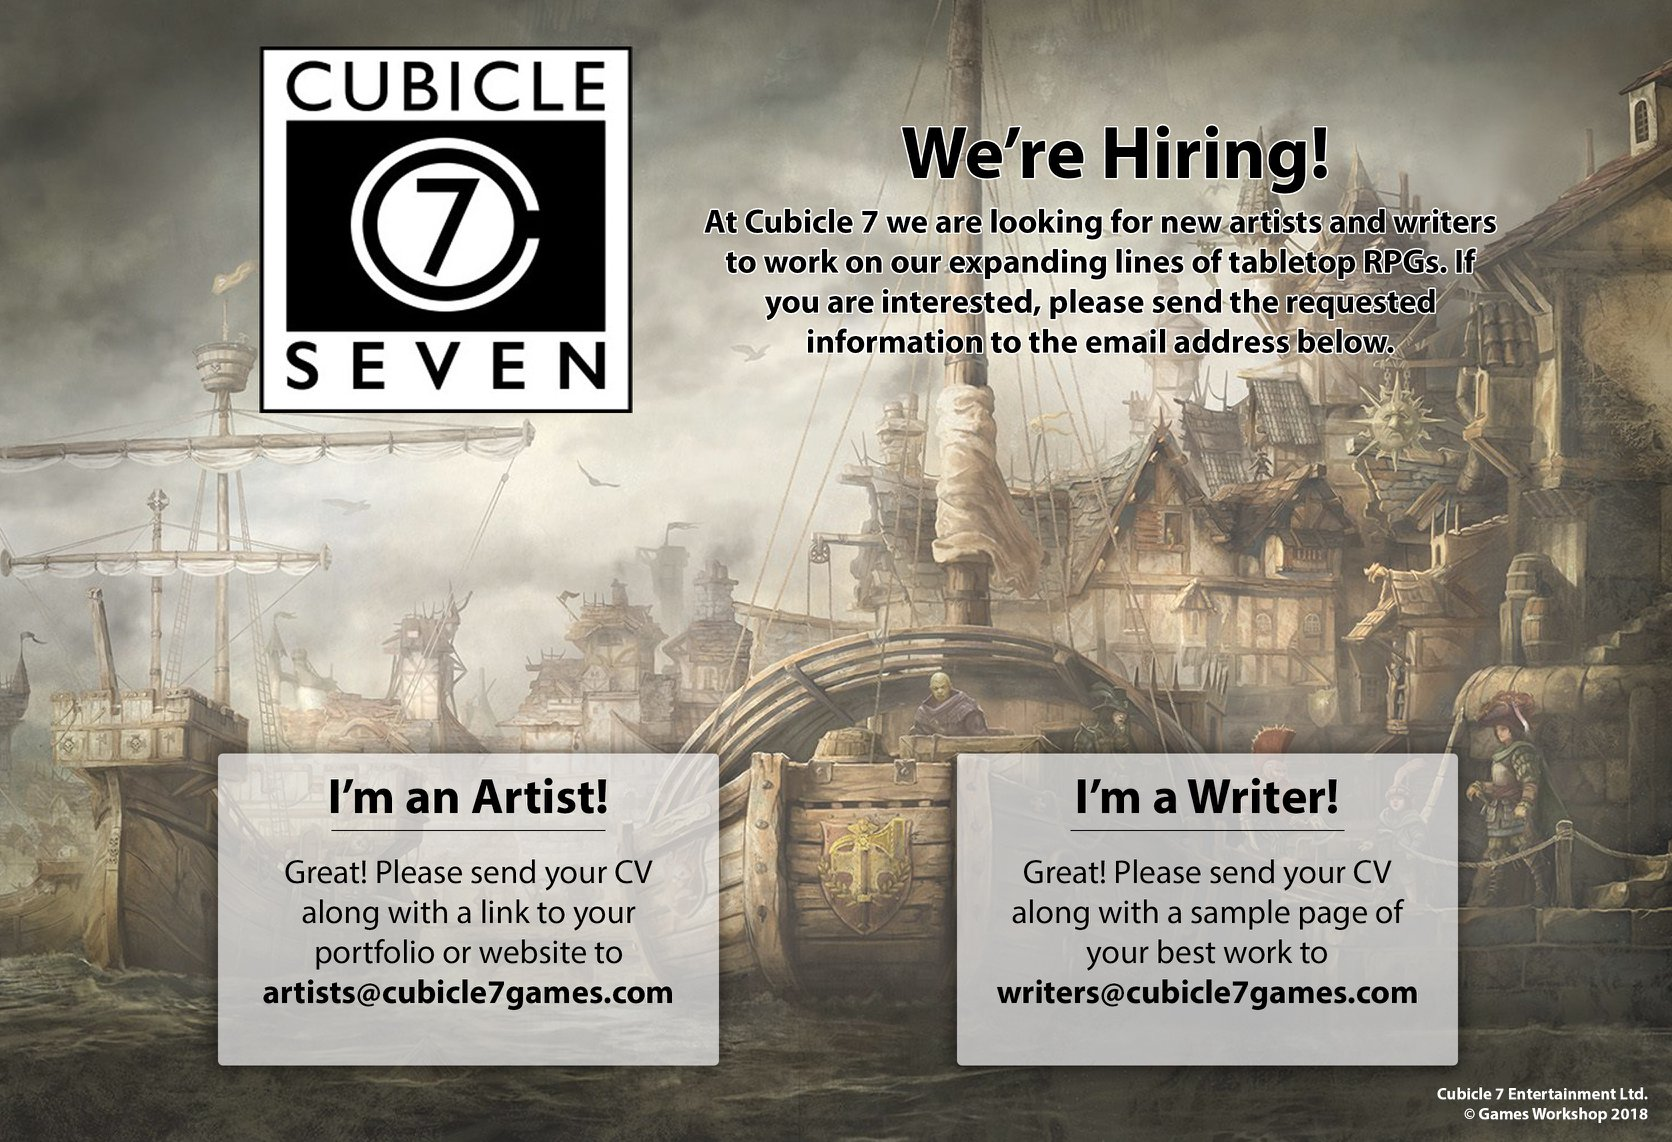 British tabletop games company Cubicle 7 is looking for new